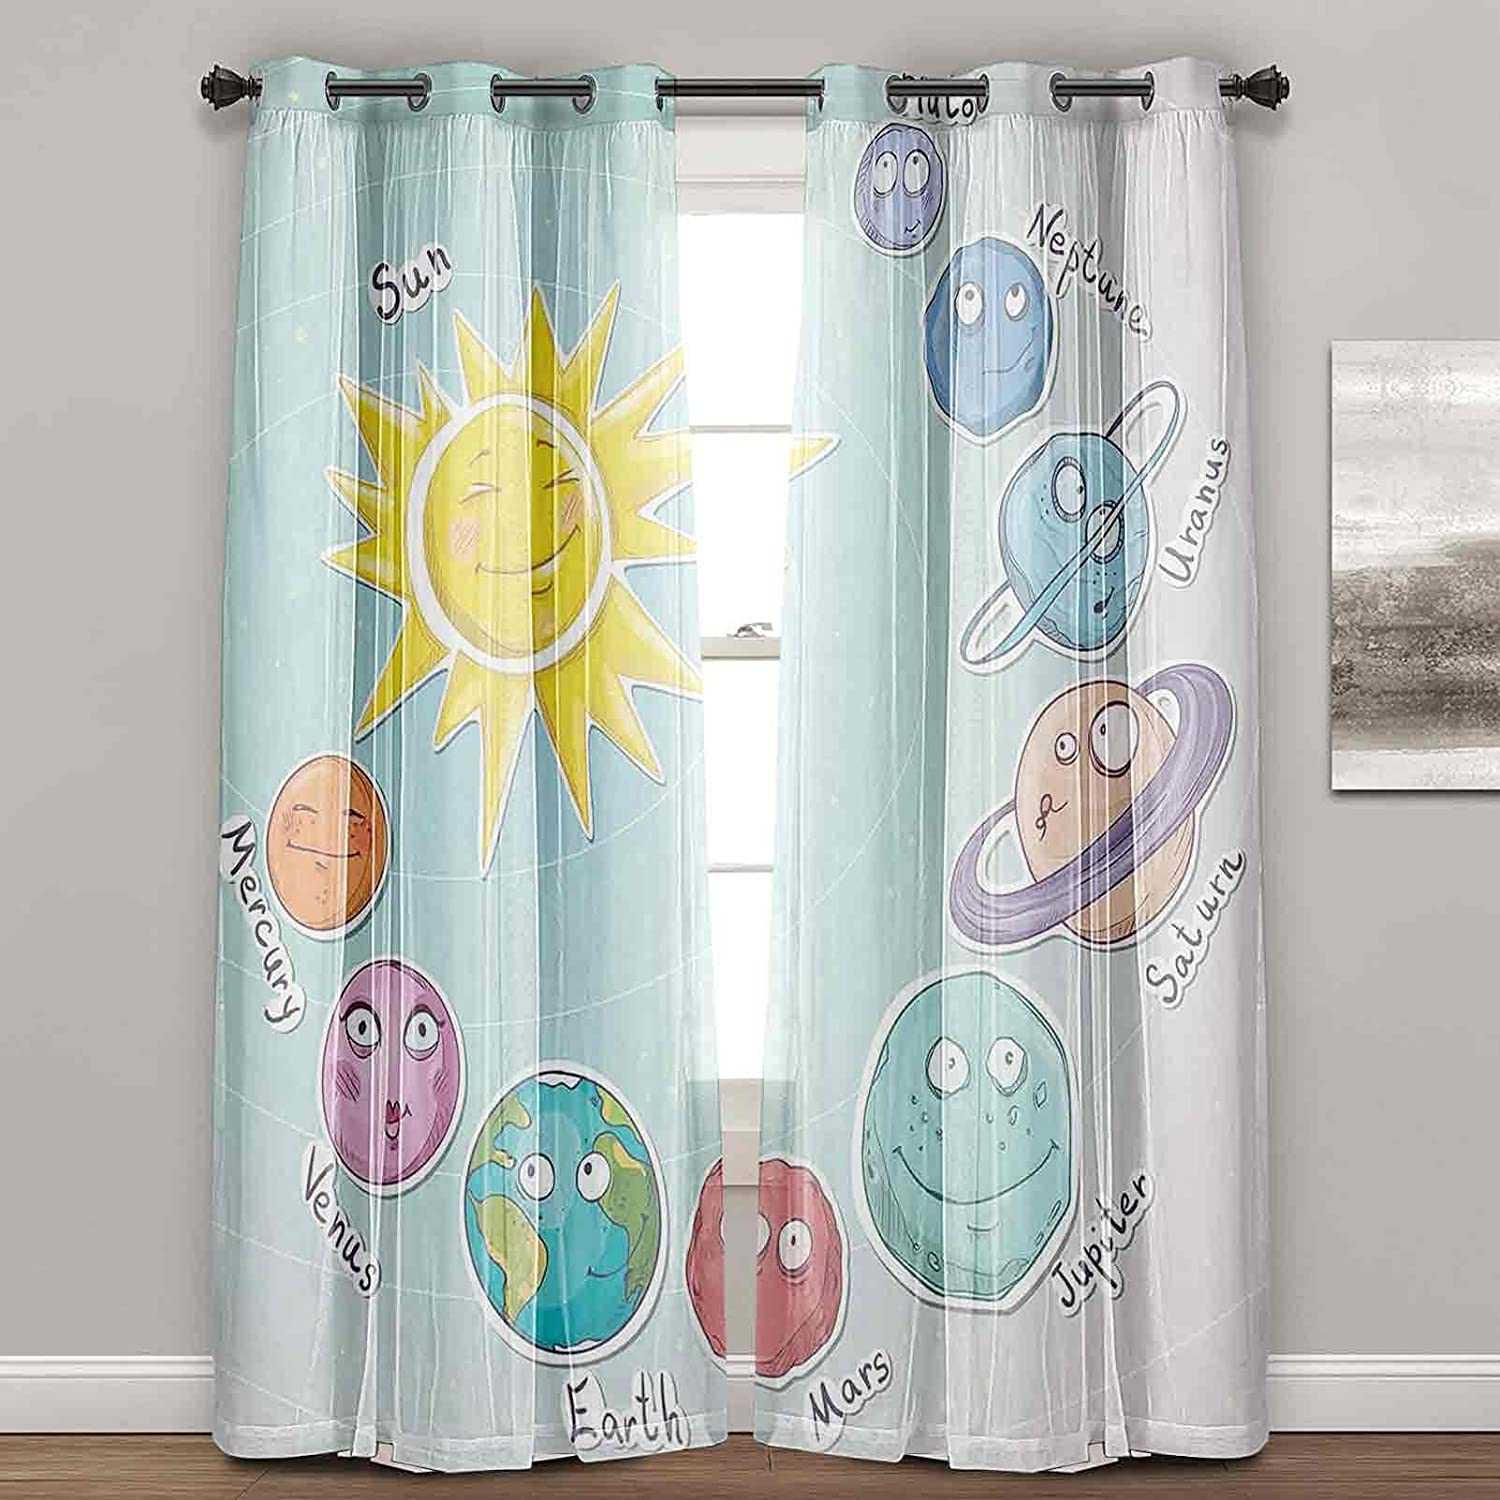 Black Cash special price Out Curtains Cute Cartoon Sun 55% OFF of Planets Solar System and